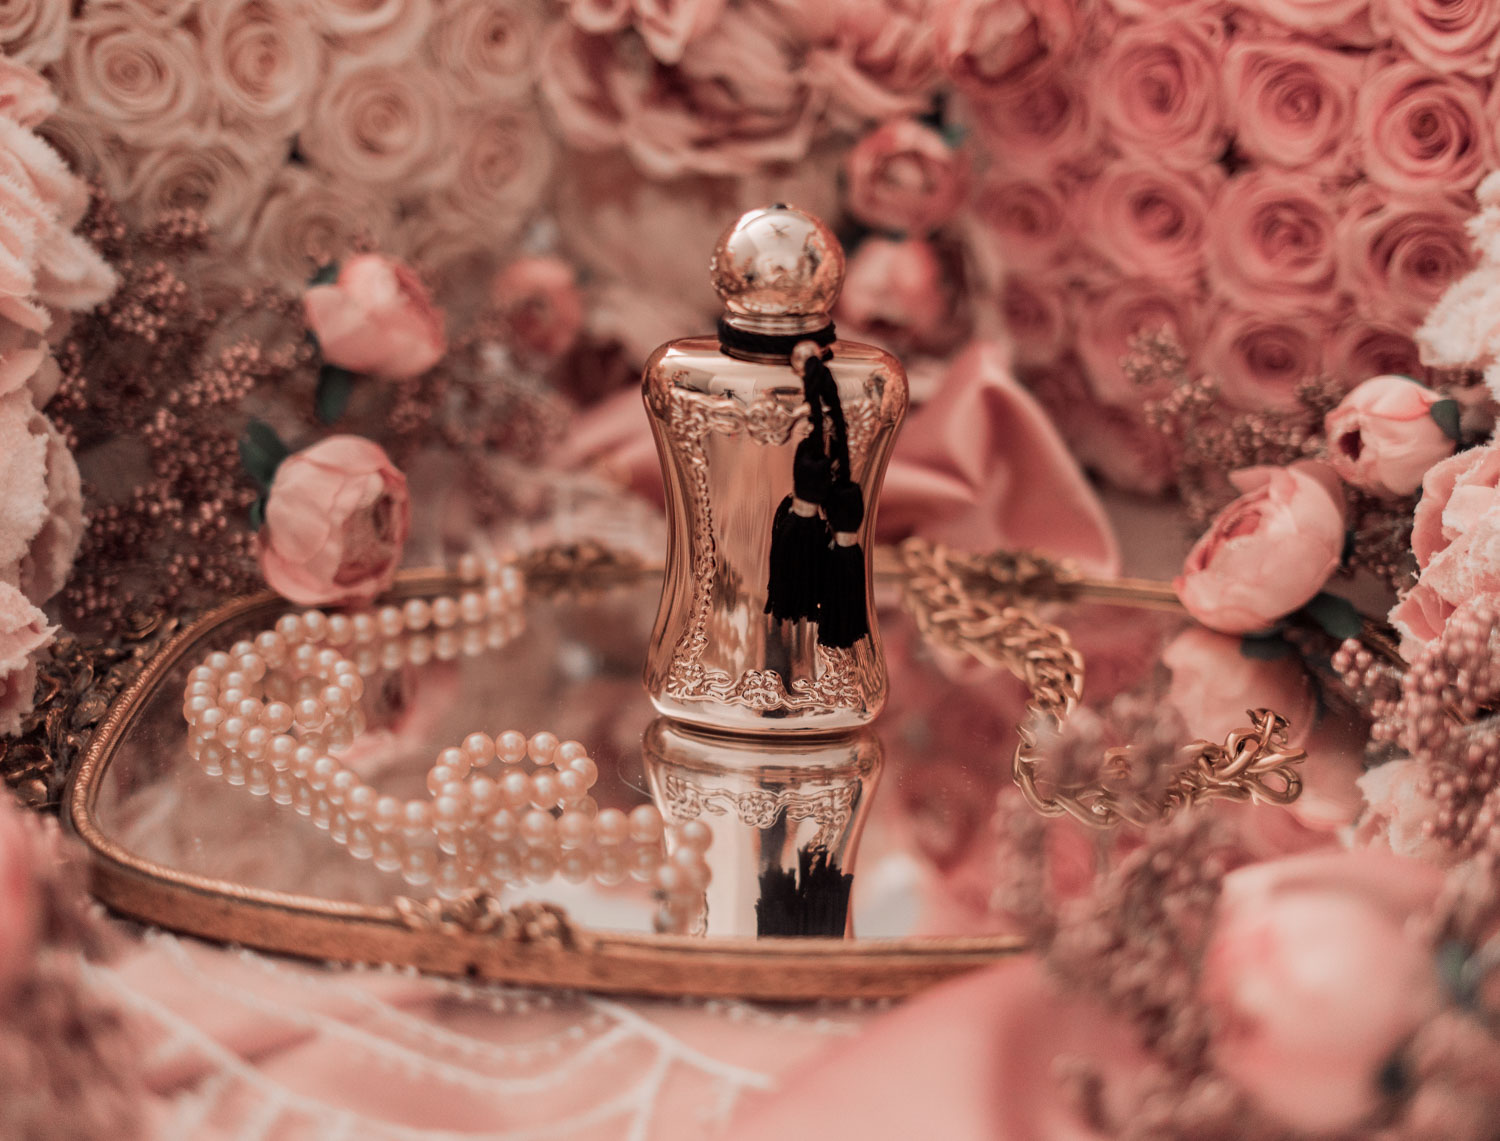 Feminine fashion and beauty blogger Elizabeth Hugen of Lizzie in Lace shares the Parfums de Marly feminine perfume collection including Darcy